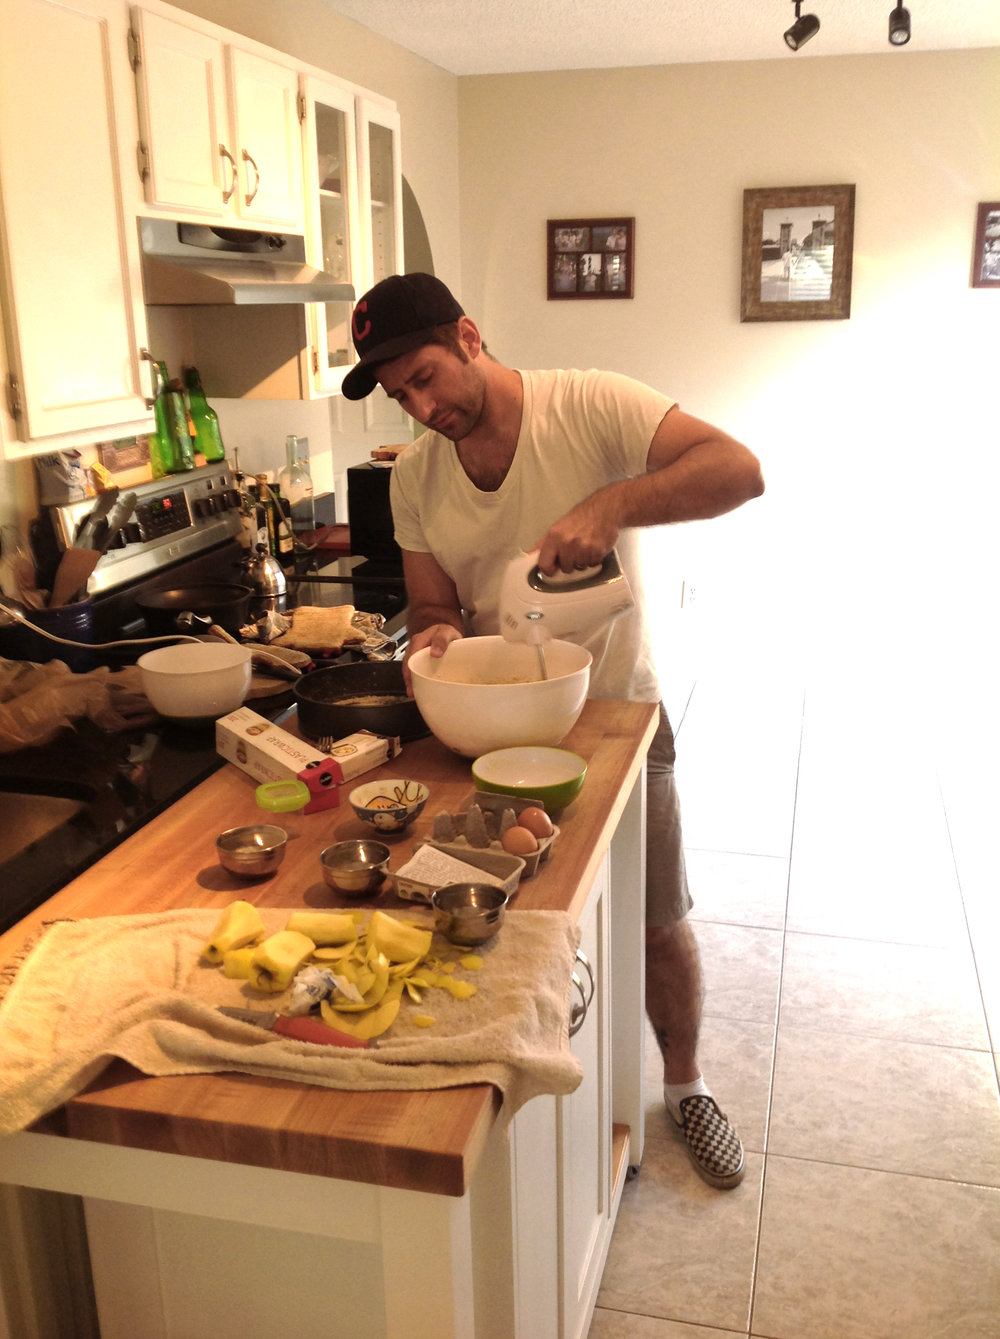 At work in the kitchen